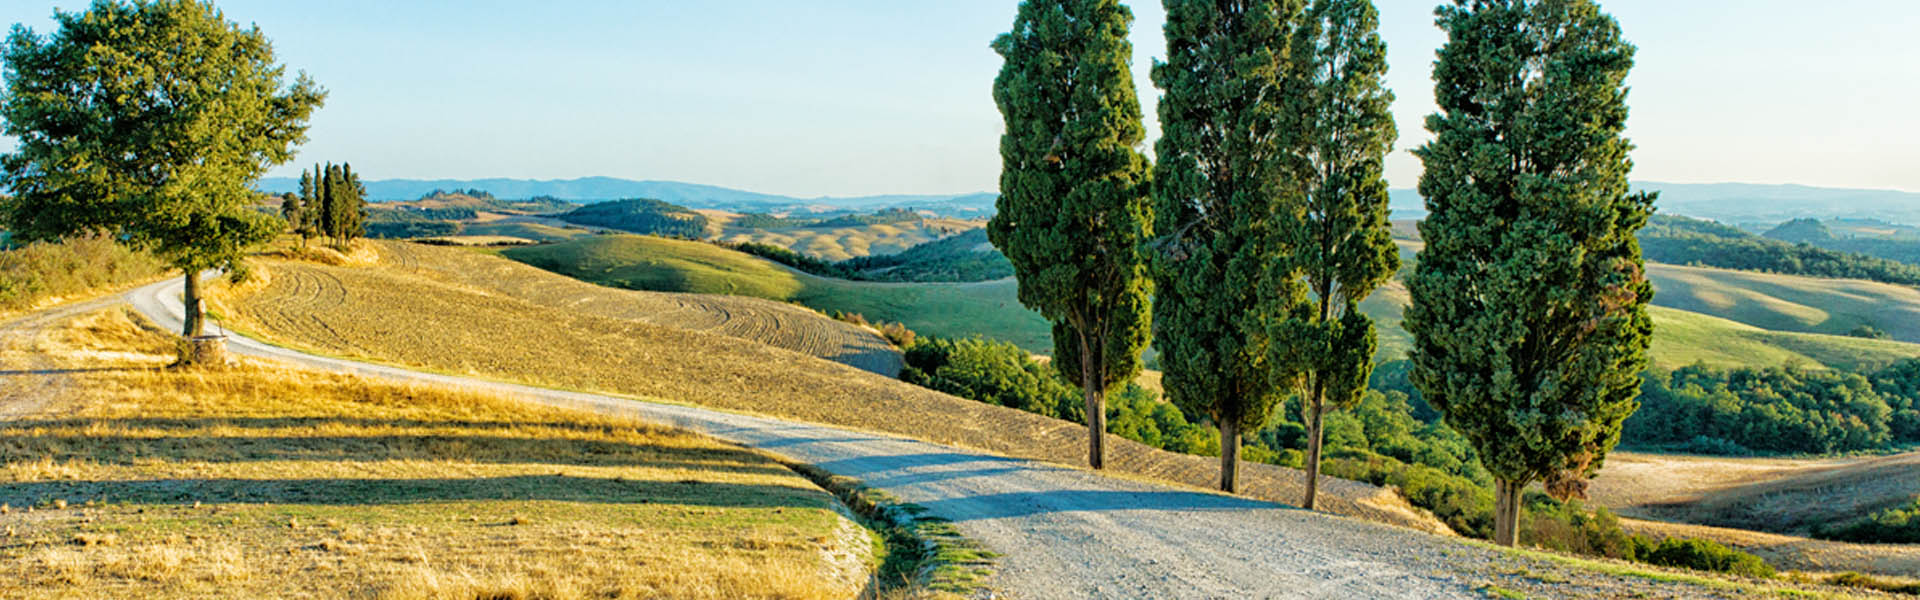 tuscany countryside accommodations